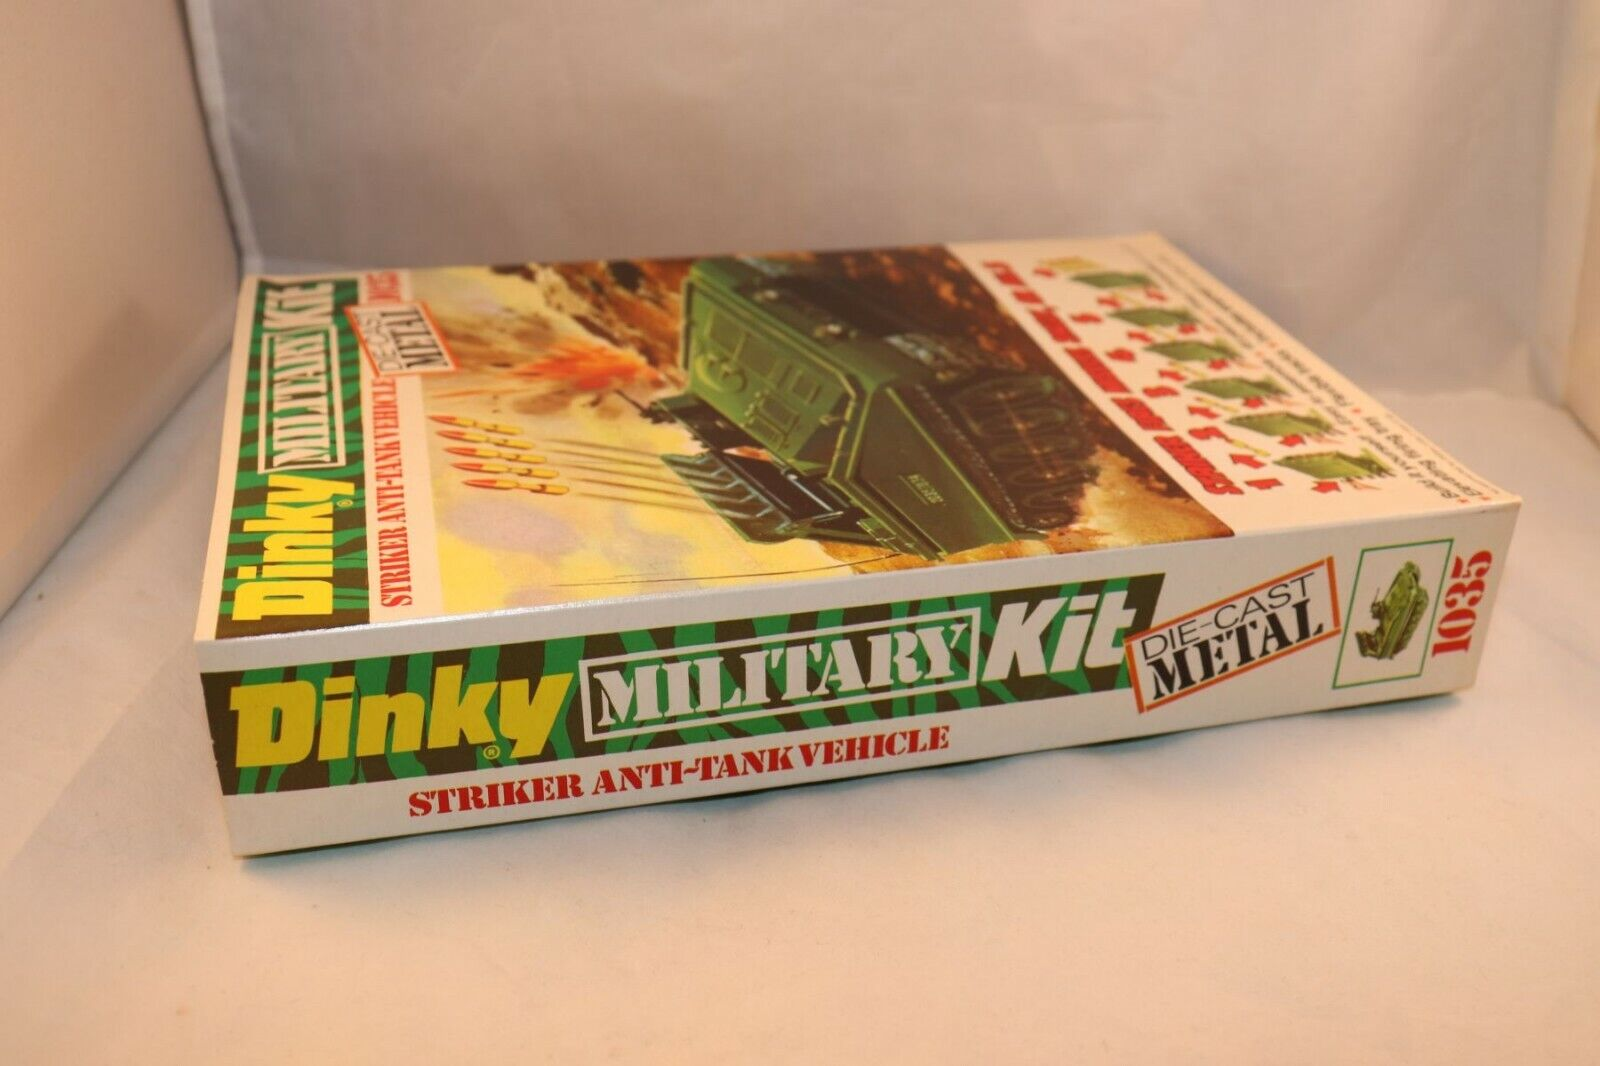 Dinky Toys 1035 1035 1035 Anti Tank mint in a SUPER box NEVER OPENED FROM A TRADE BOX c6b7f1